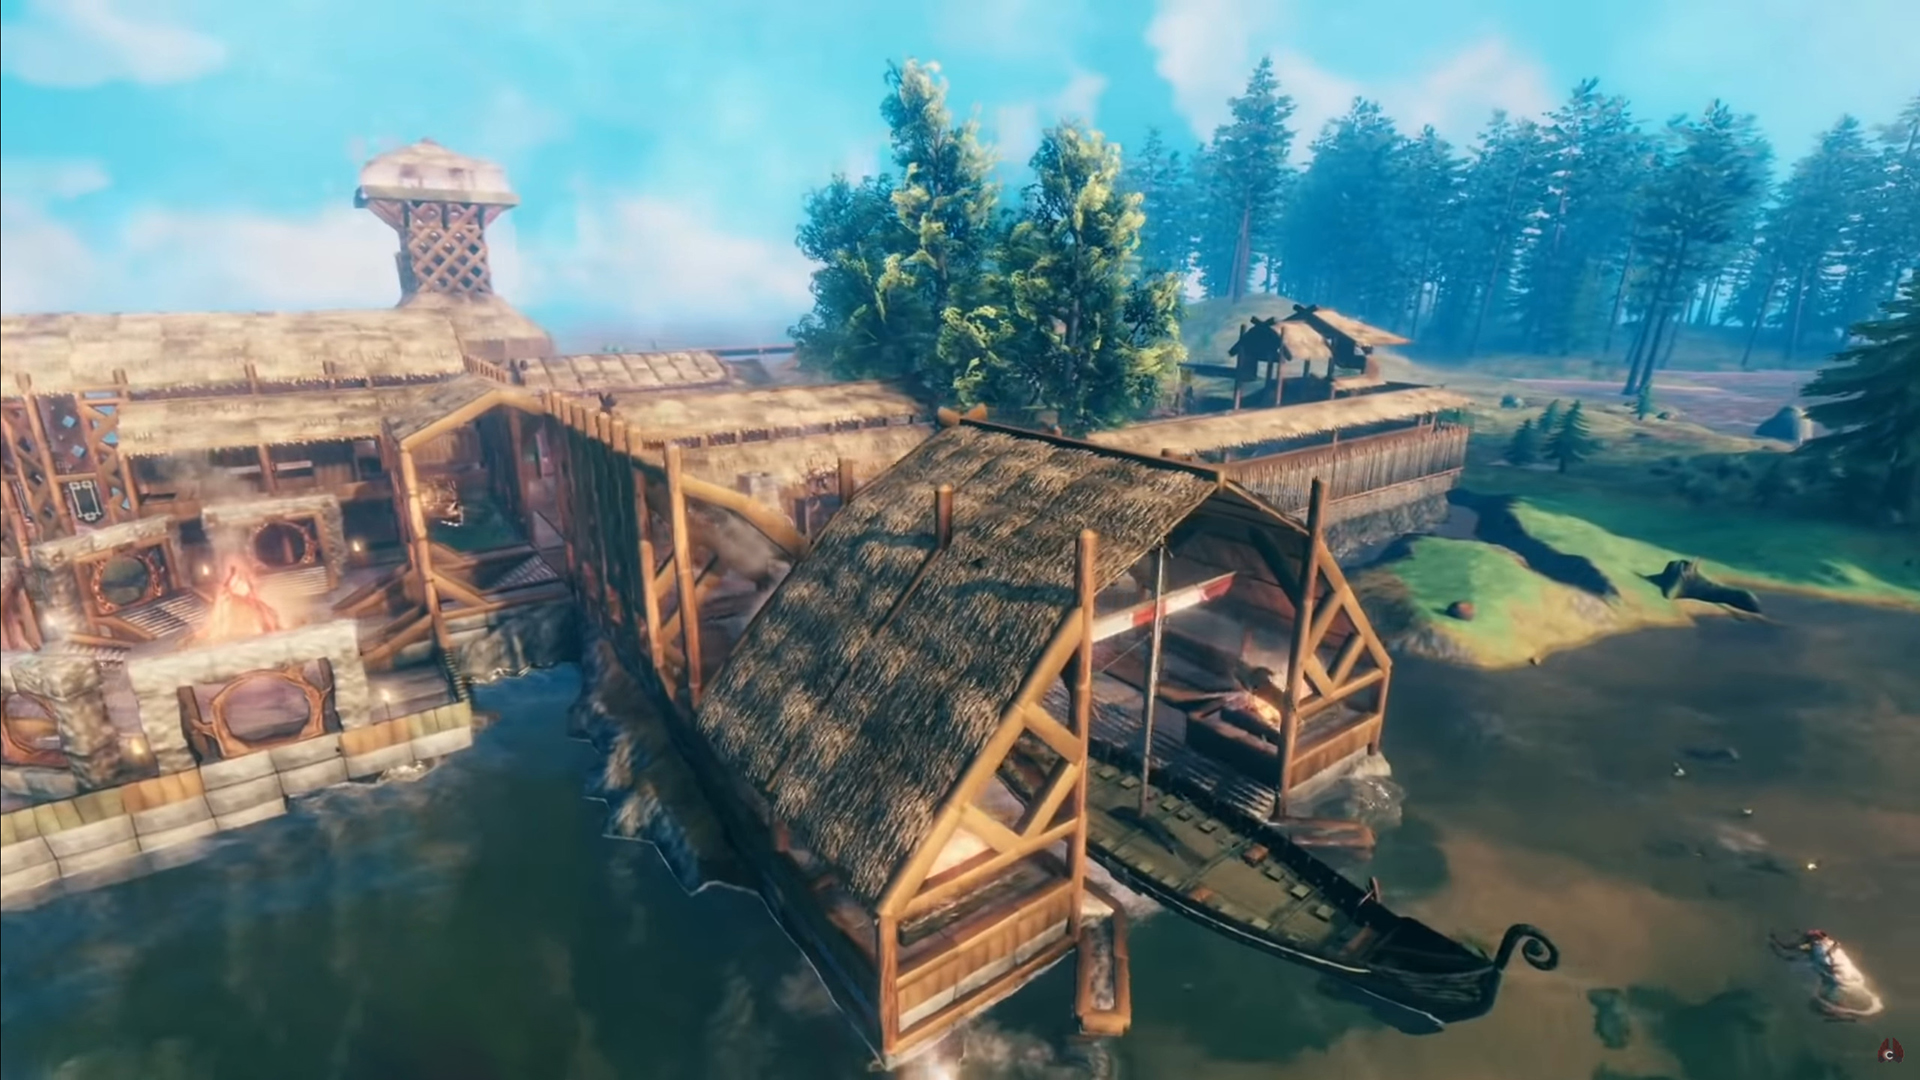 CohhCarnage spent 140 hours building an epic Valheim base, here's what he learned